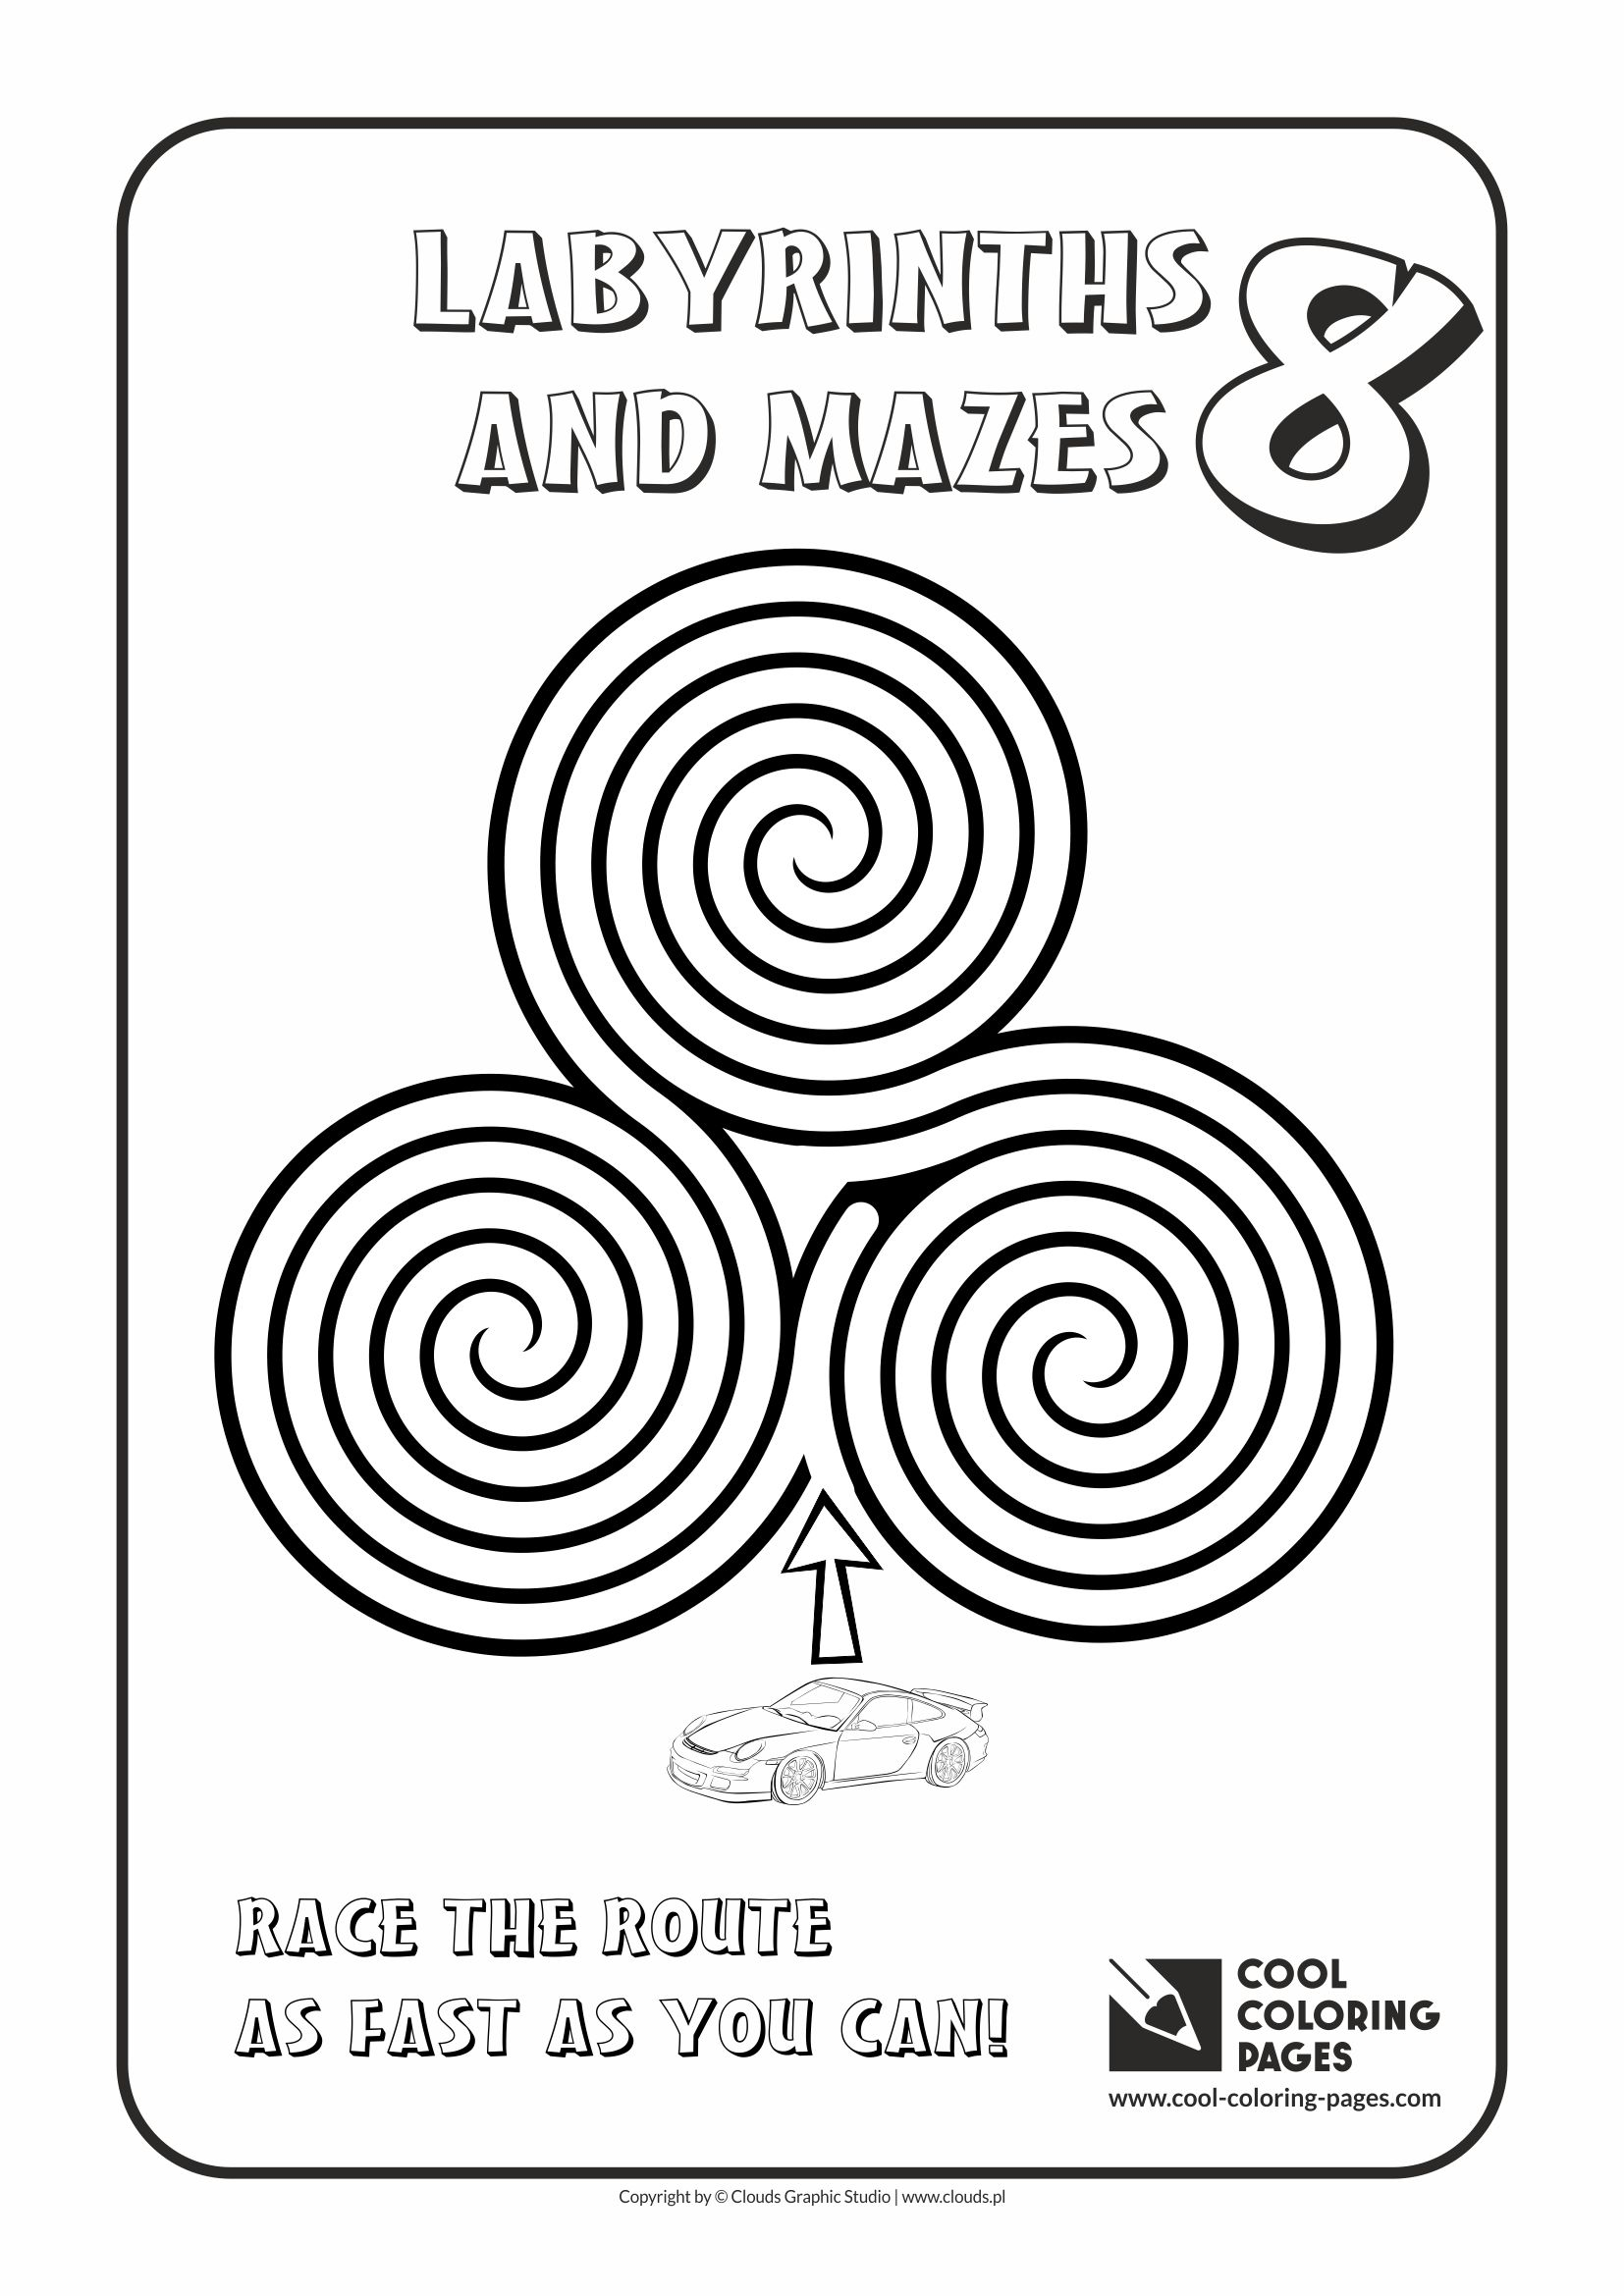 Cool Coloring Pages - Labyrinths and mazes / Maze no 8